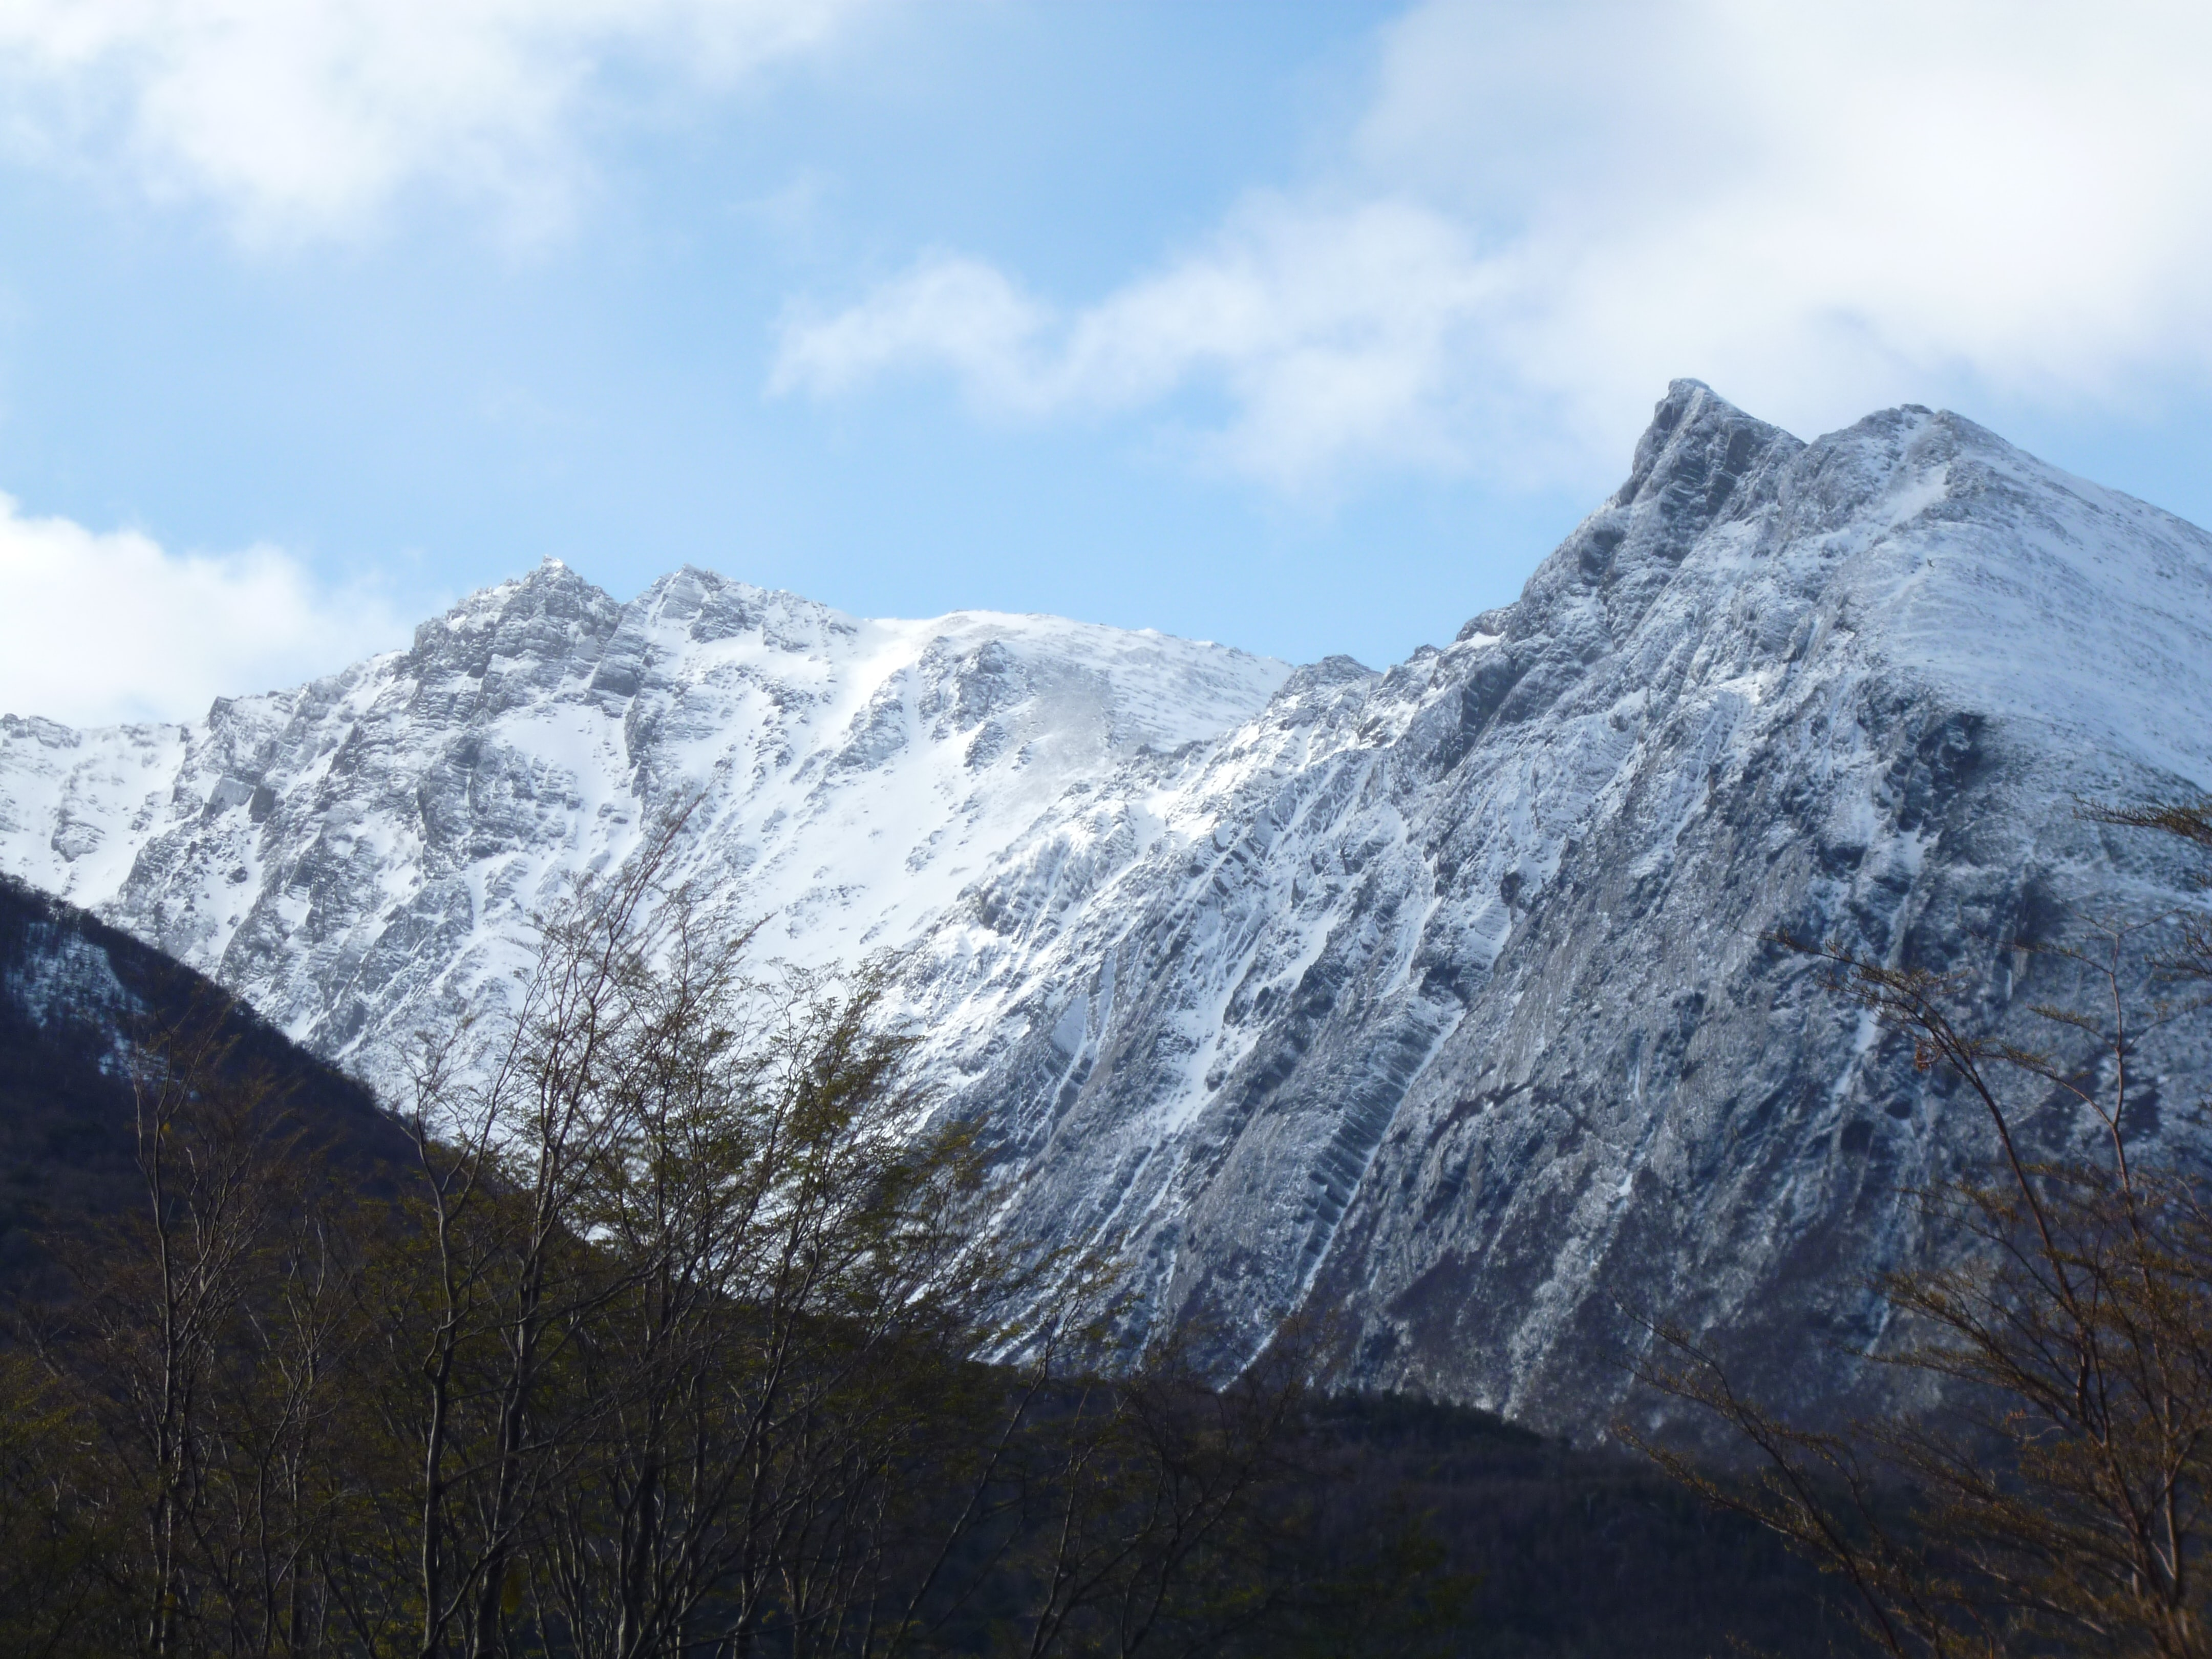 snow coated mountain during daytime